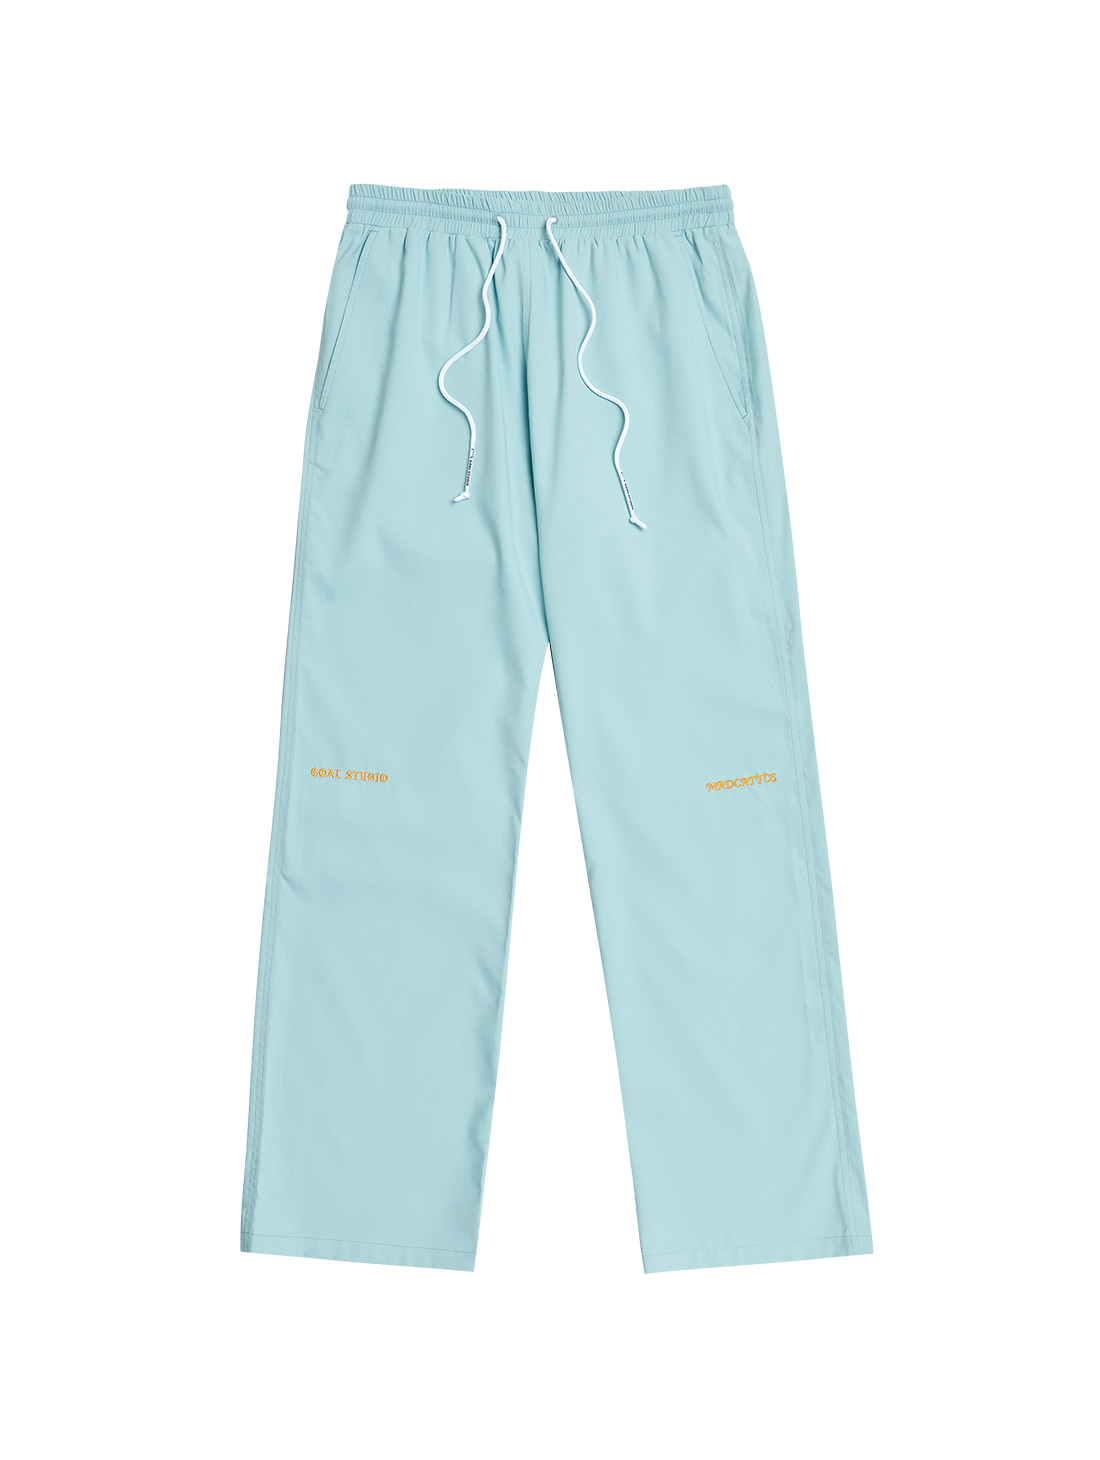 MC WOVEN PANTS - LIGHT BLUE